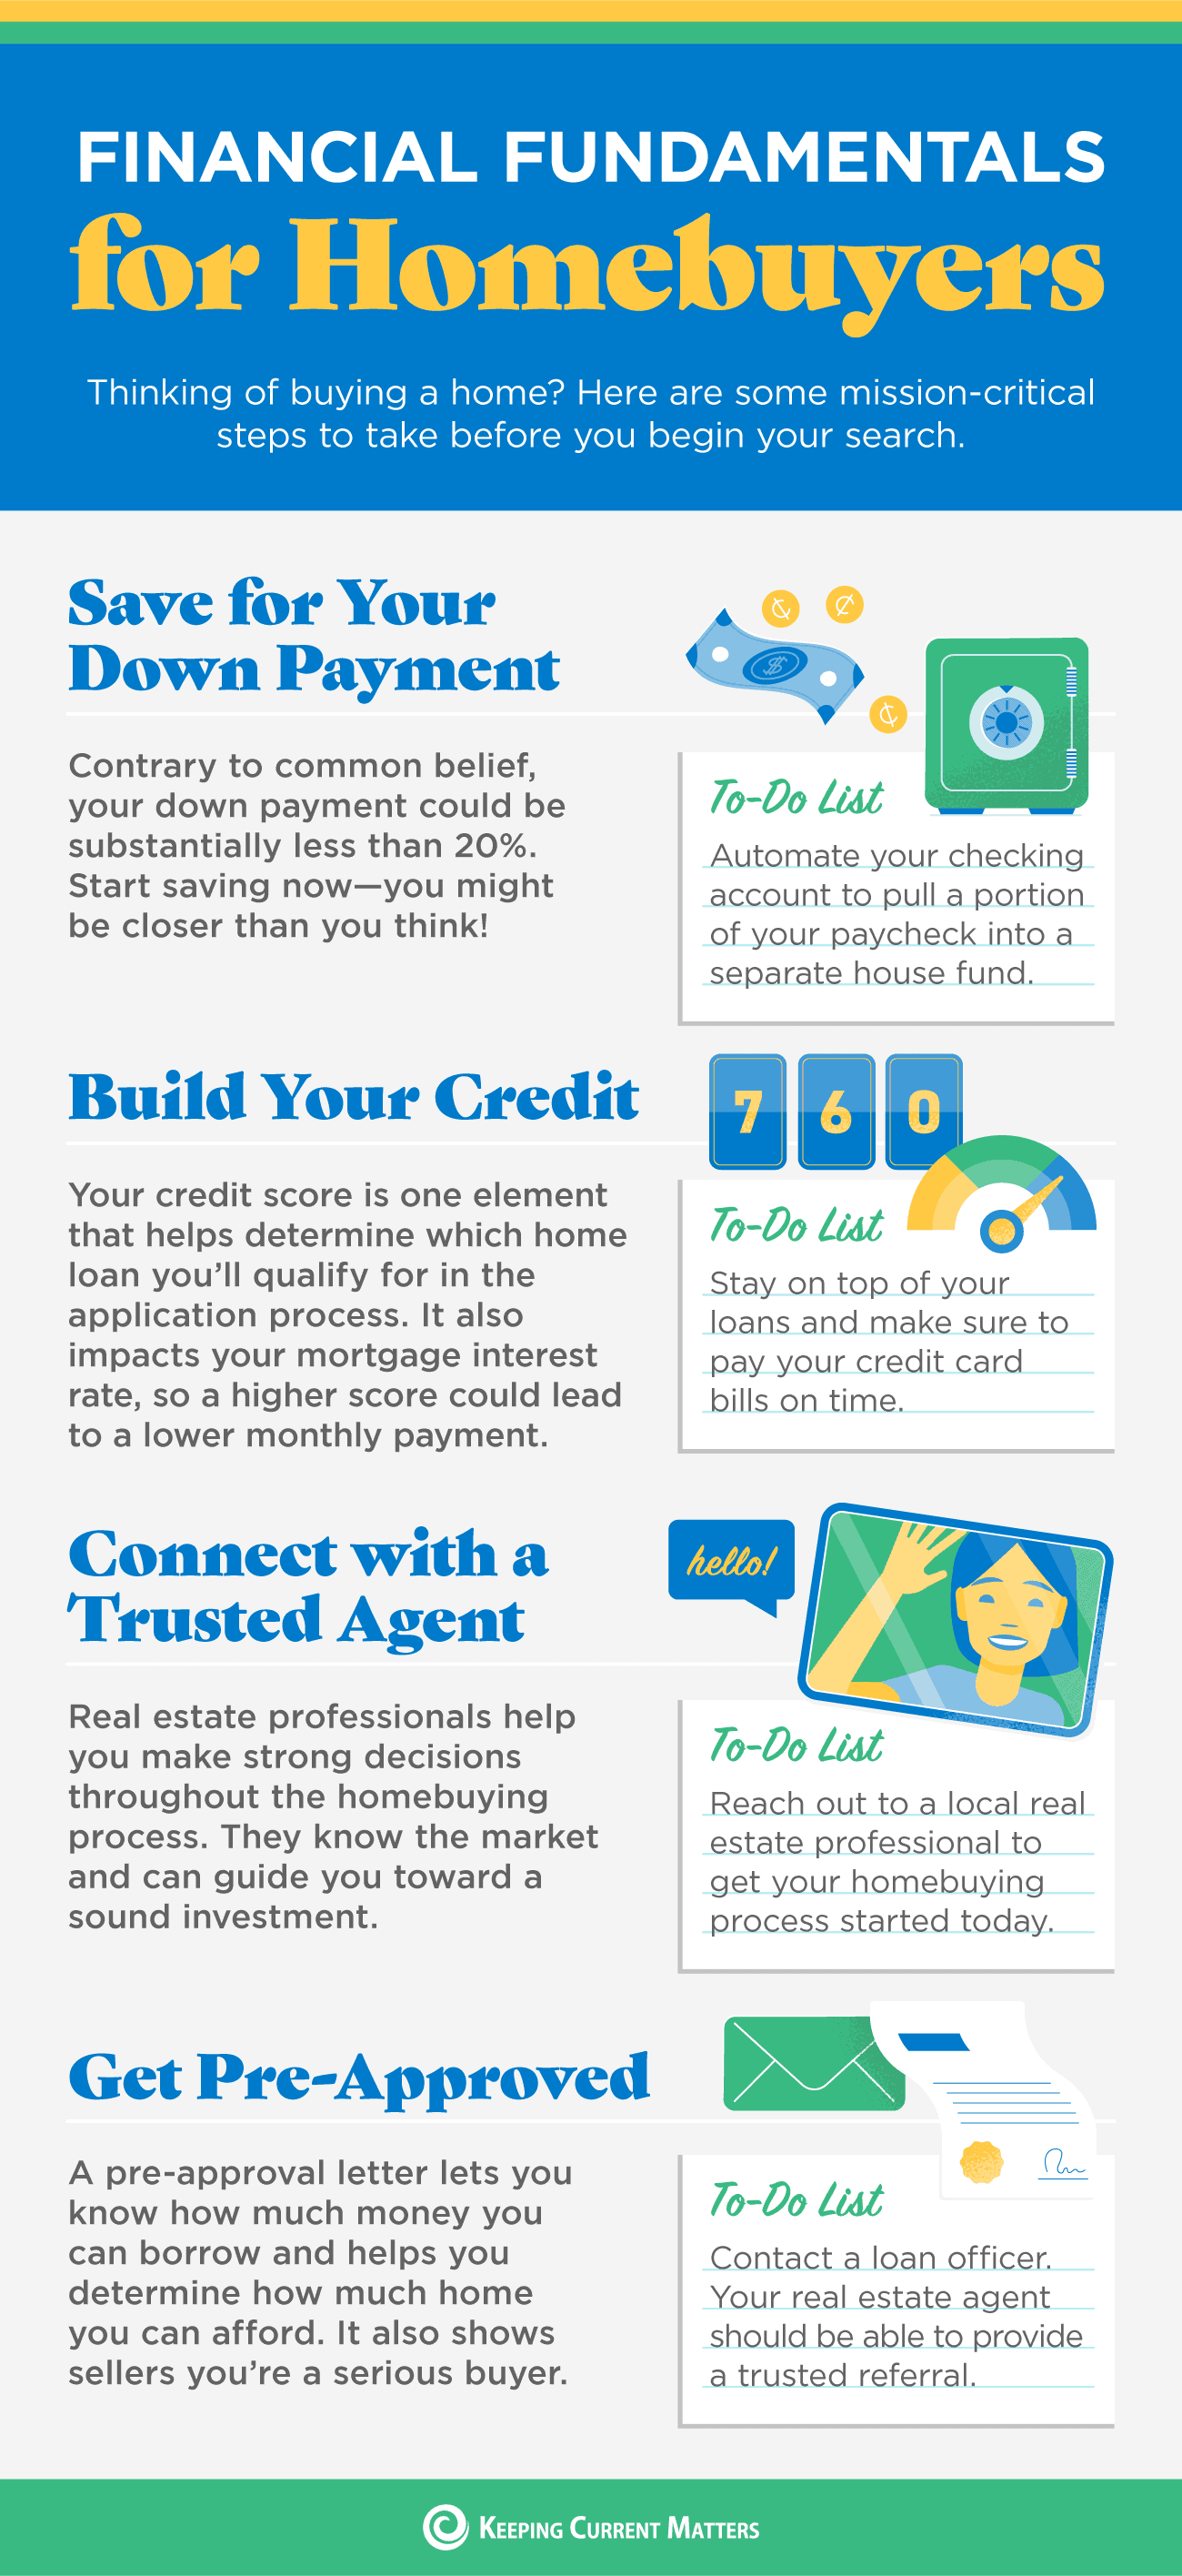 Financial Fundamentals for Homebuyers [INFOGRAPHIC] | Keeping Current Matters